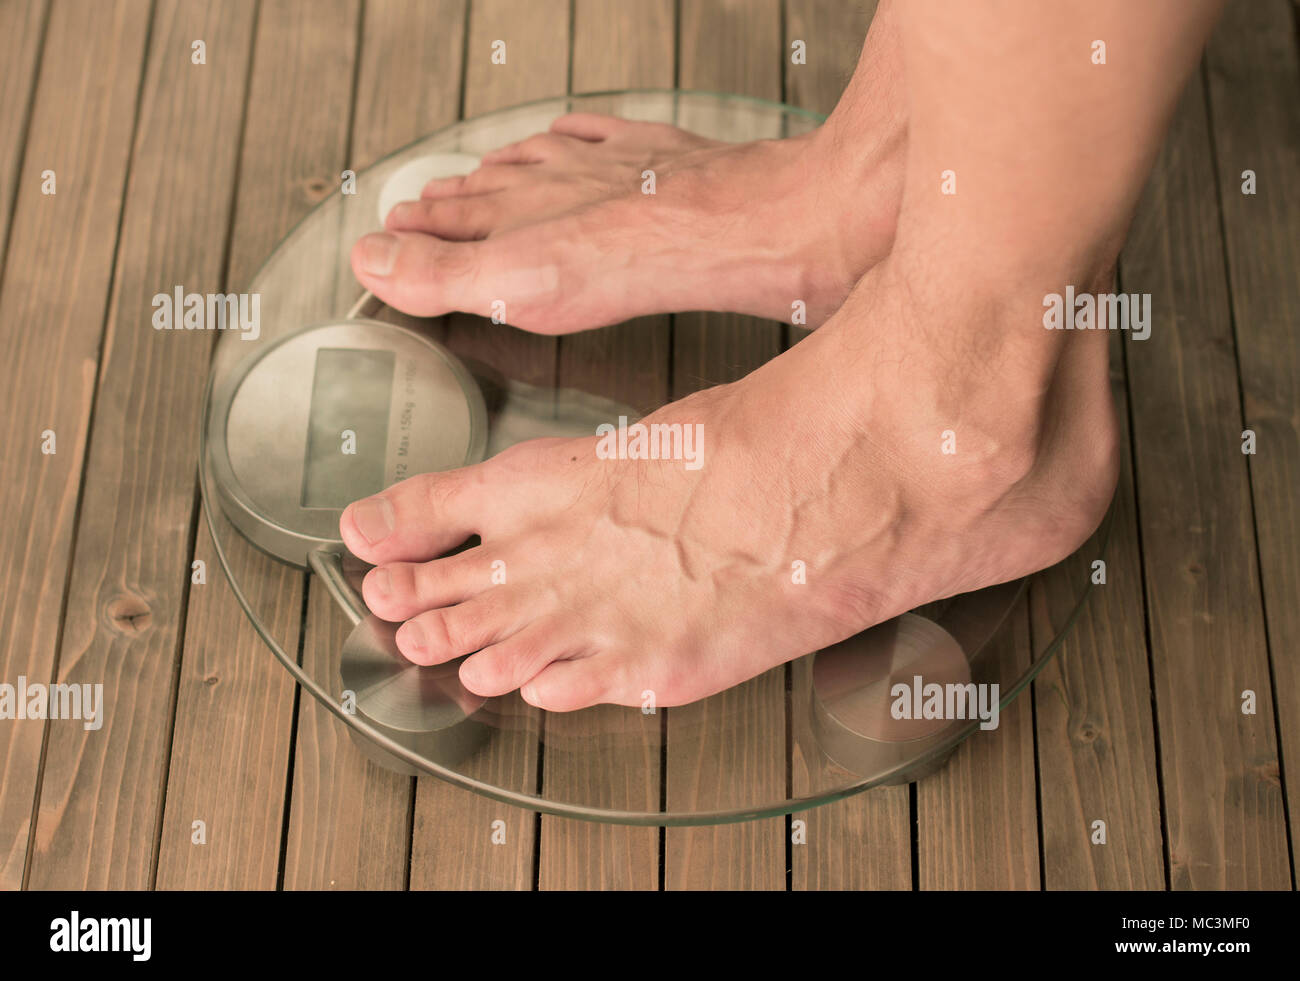 Man Stands On The Scales Male Feet On Glass Scales And Wooden Floor Stock Photo Alamy